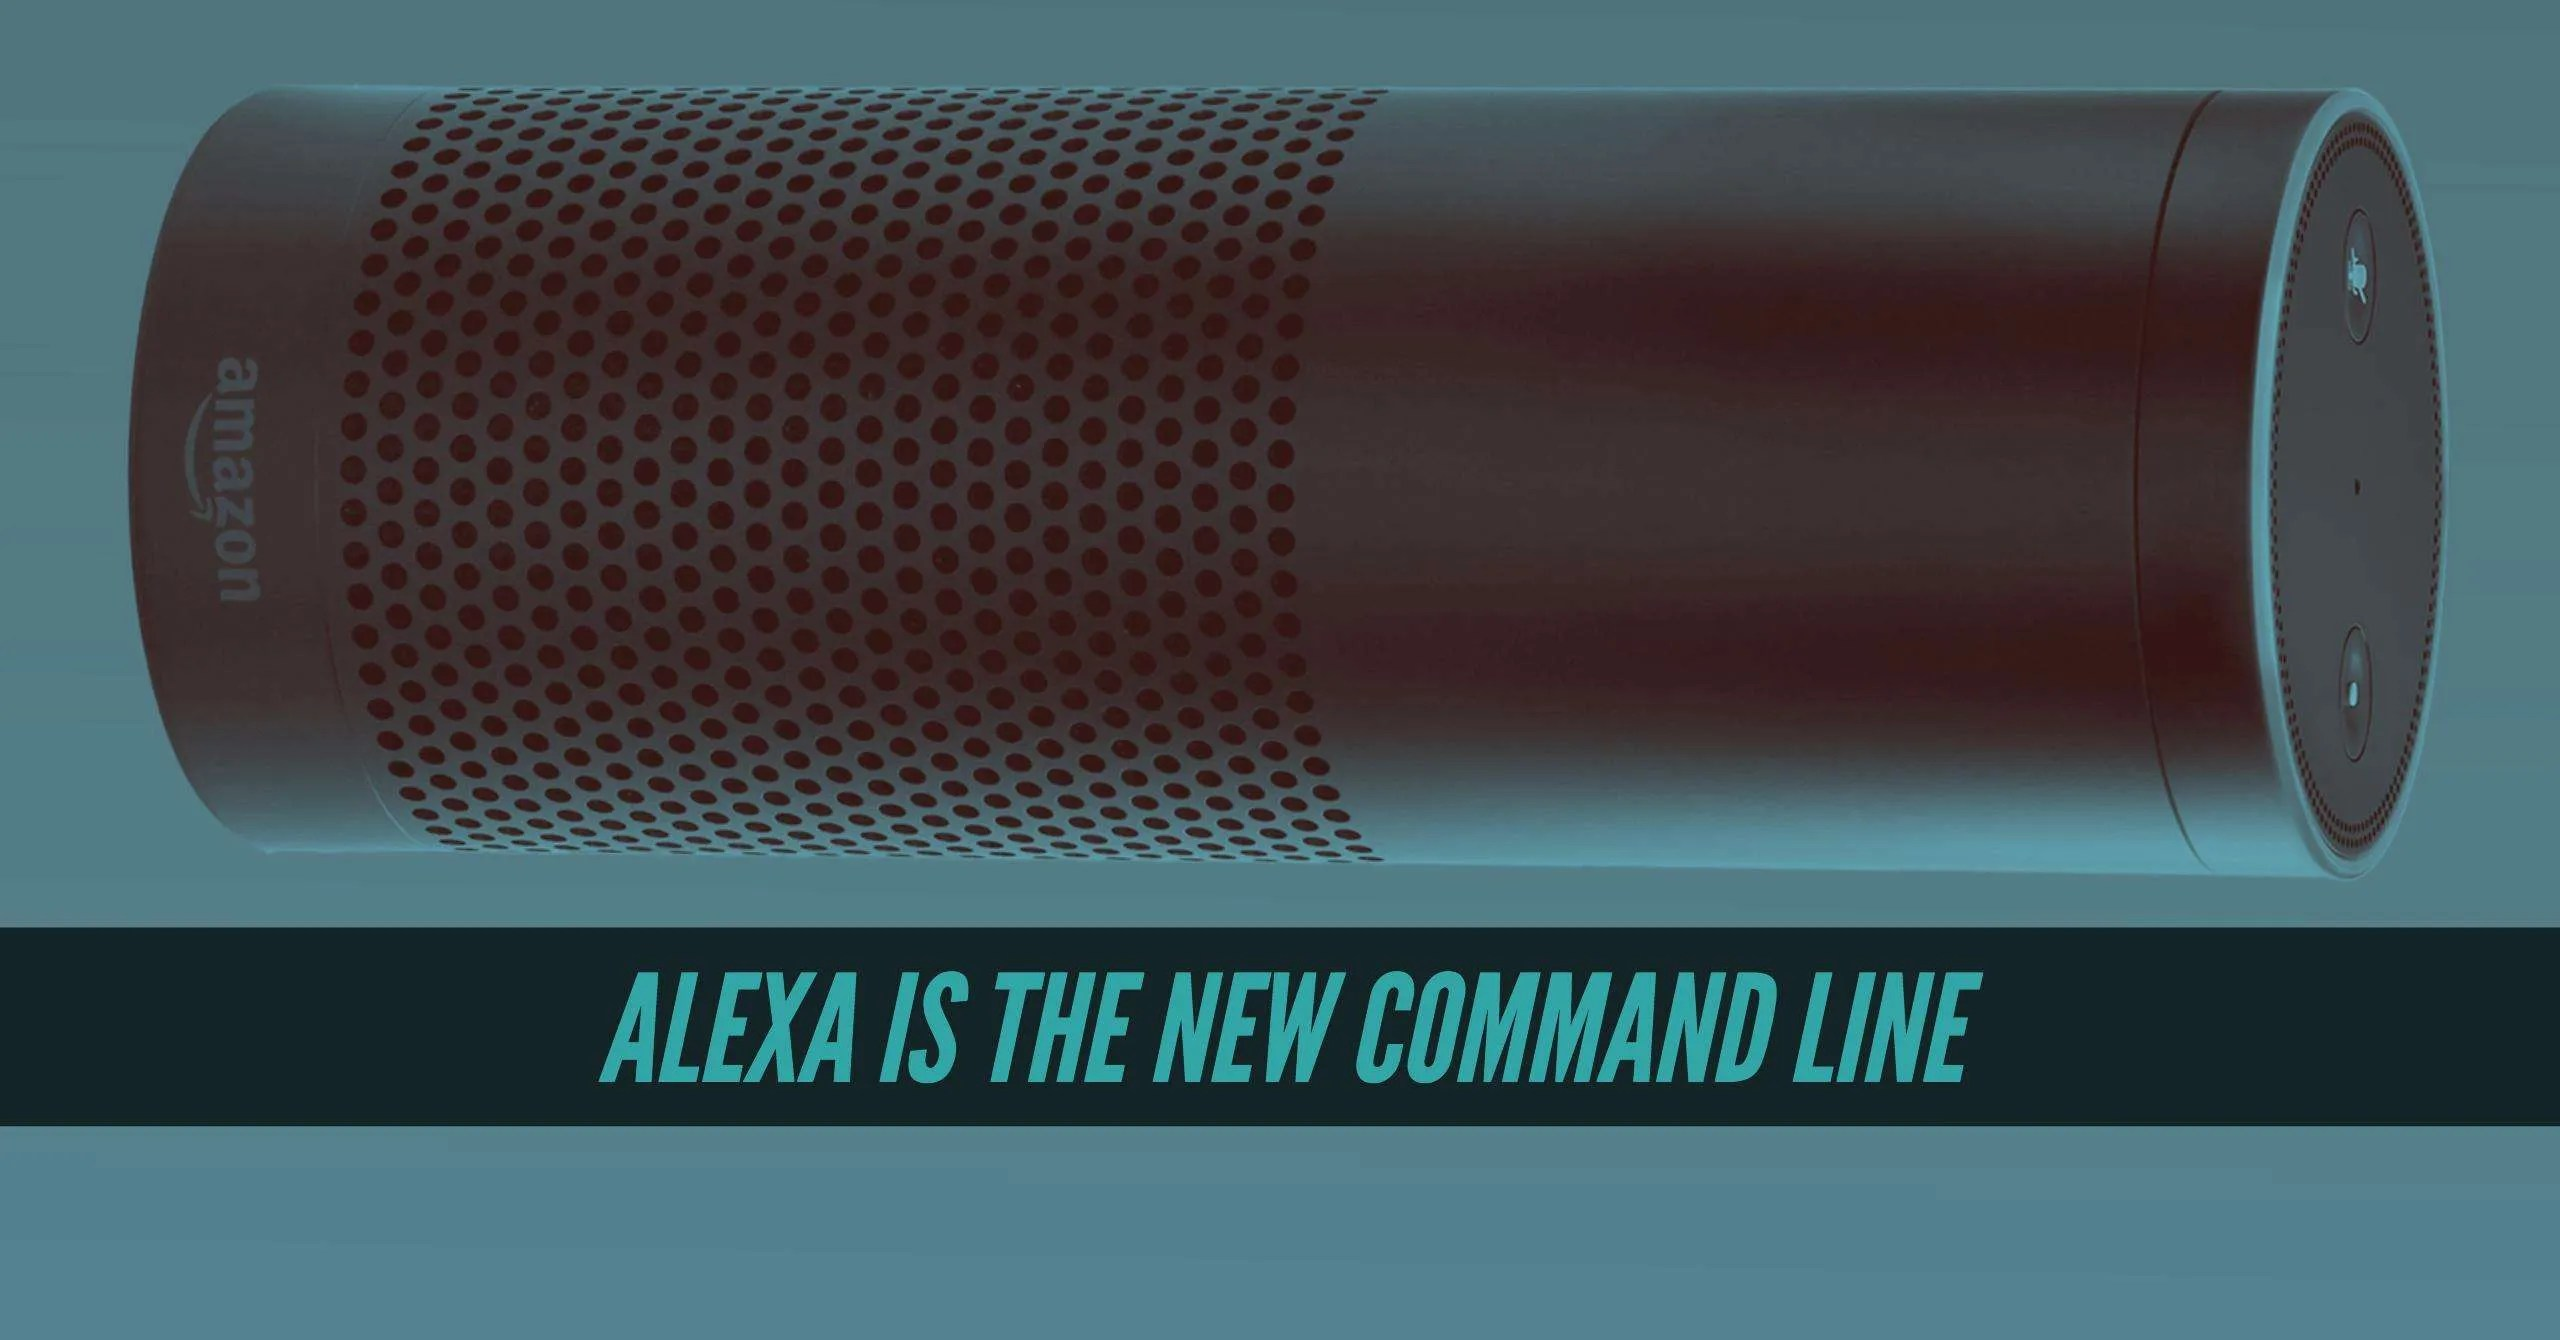 The new command line